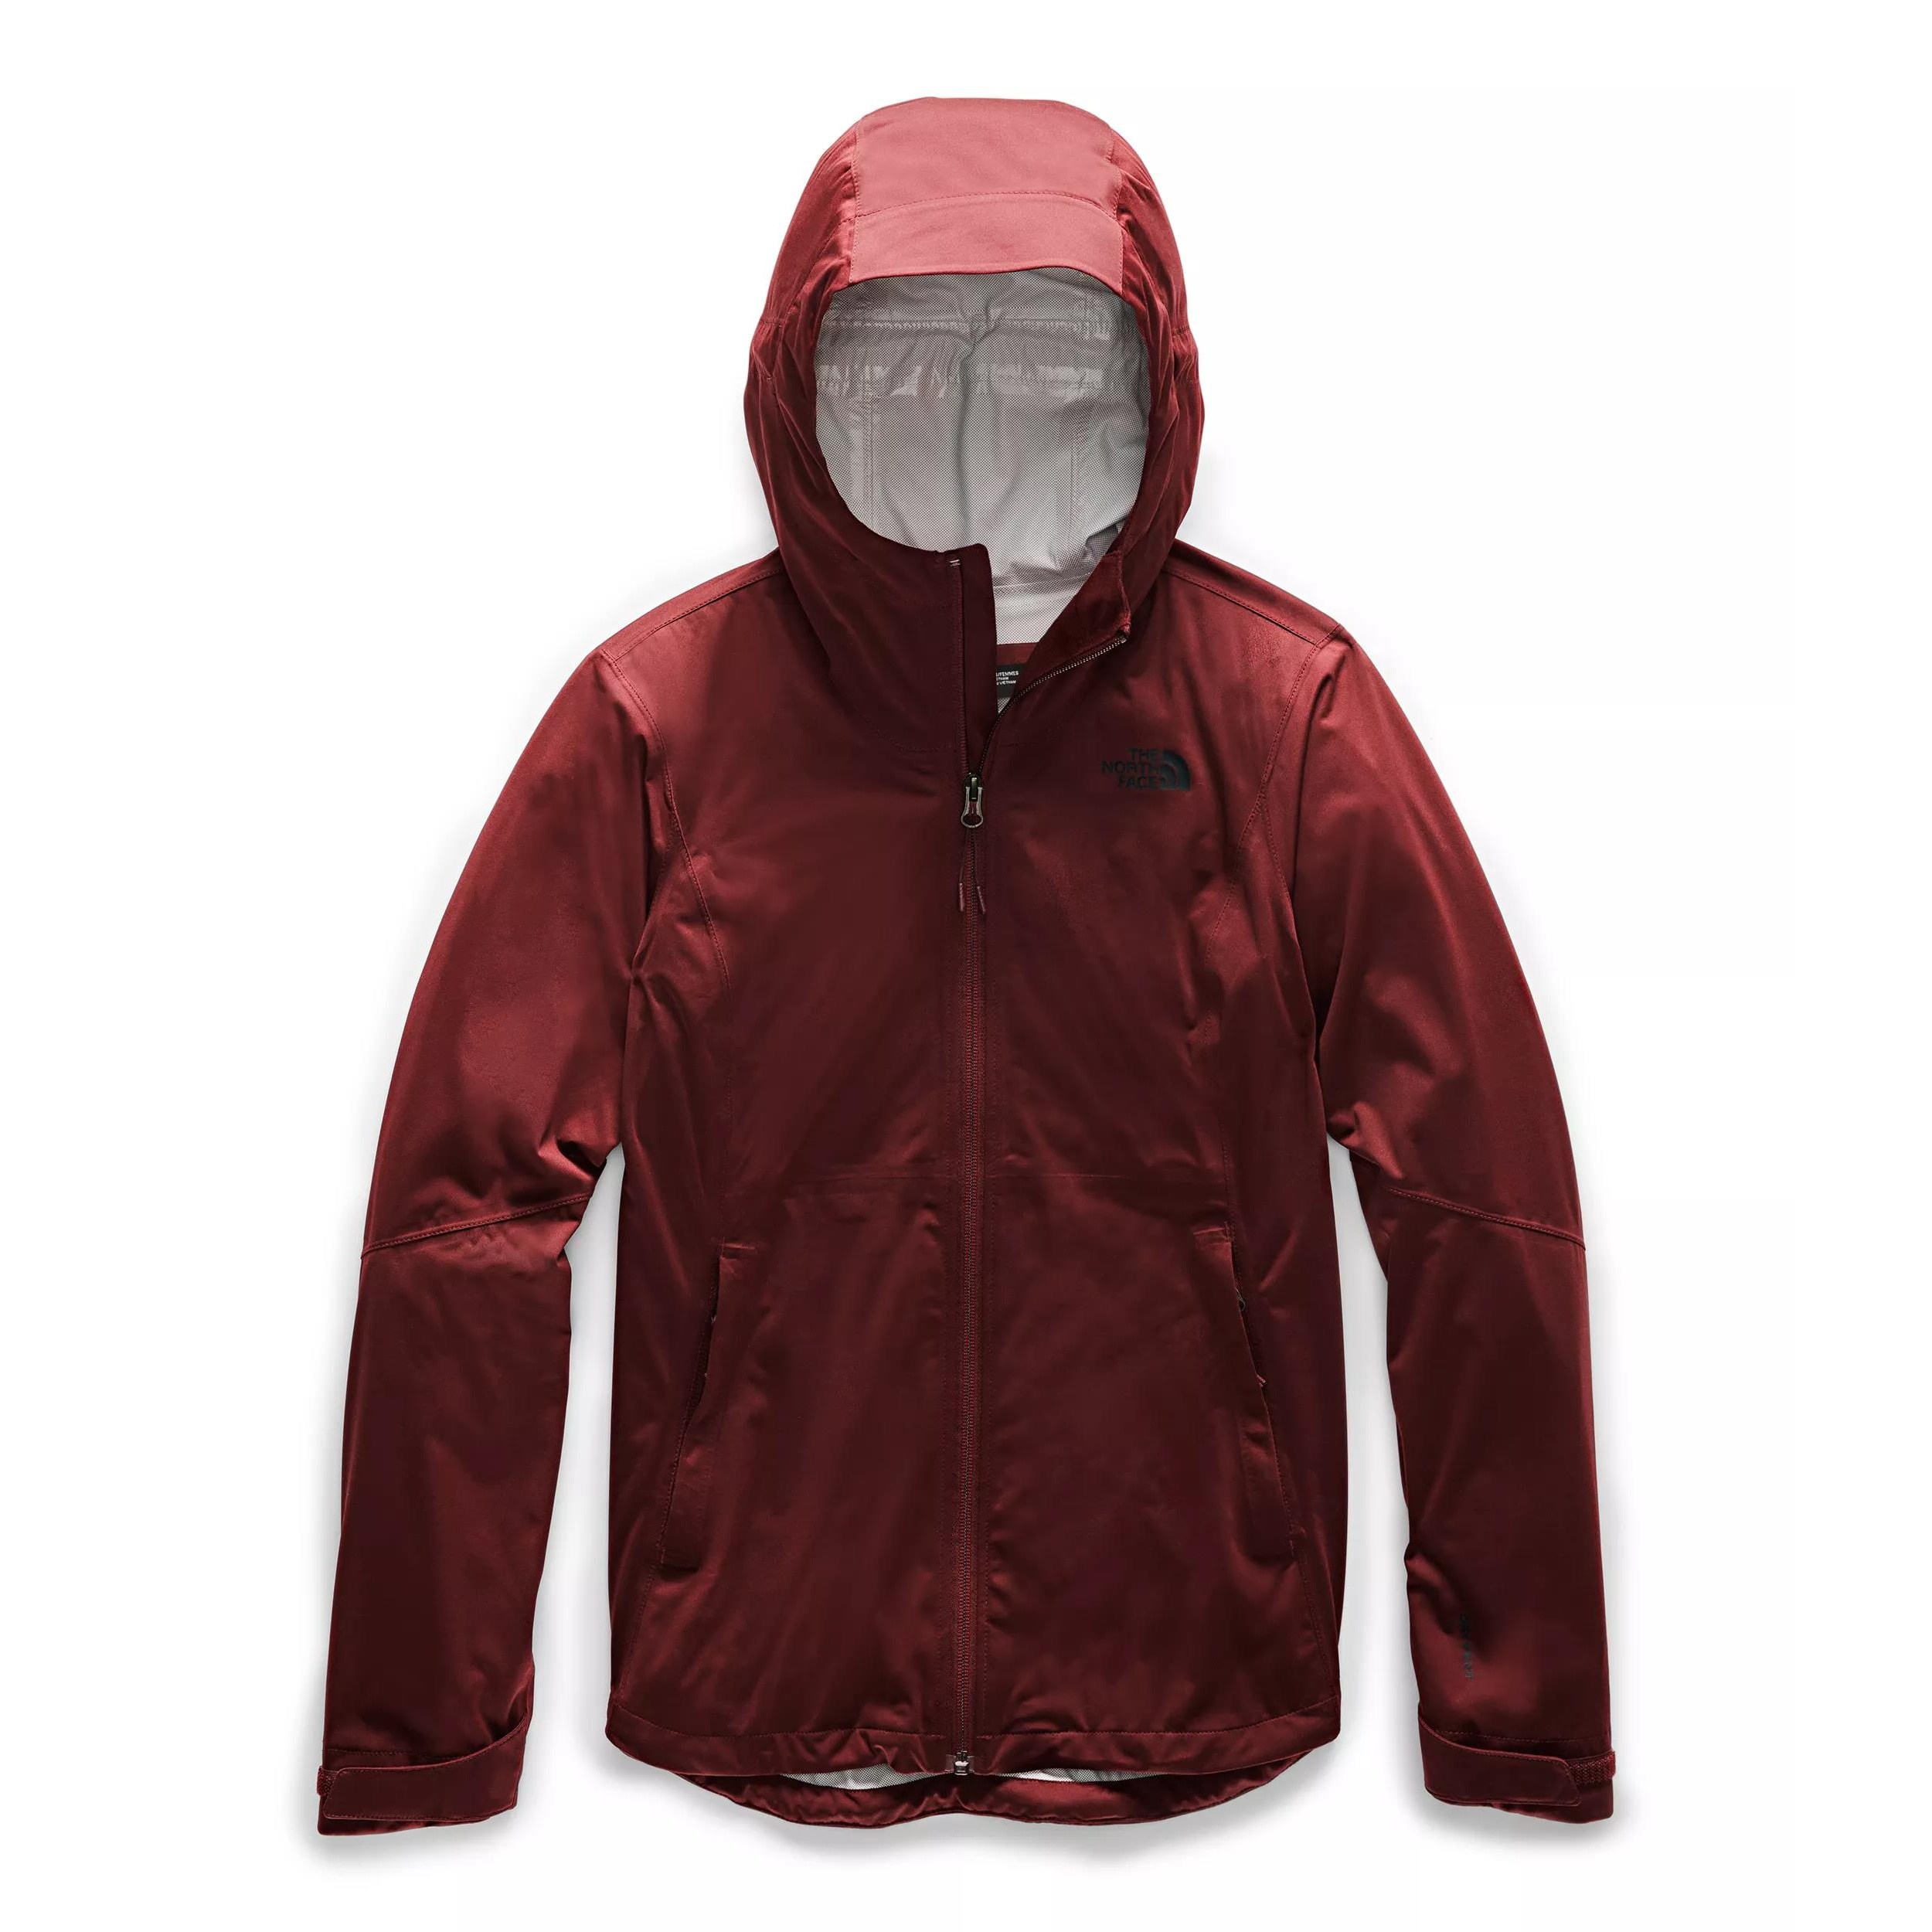 Allproof Stretch Jacket - Women's